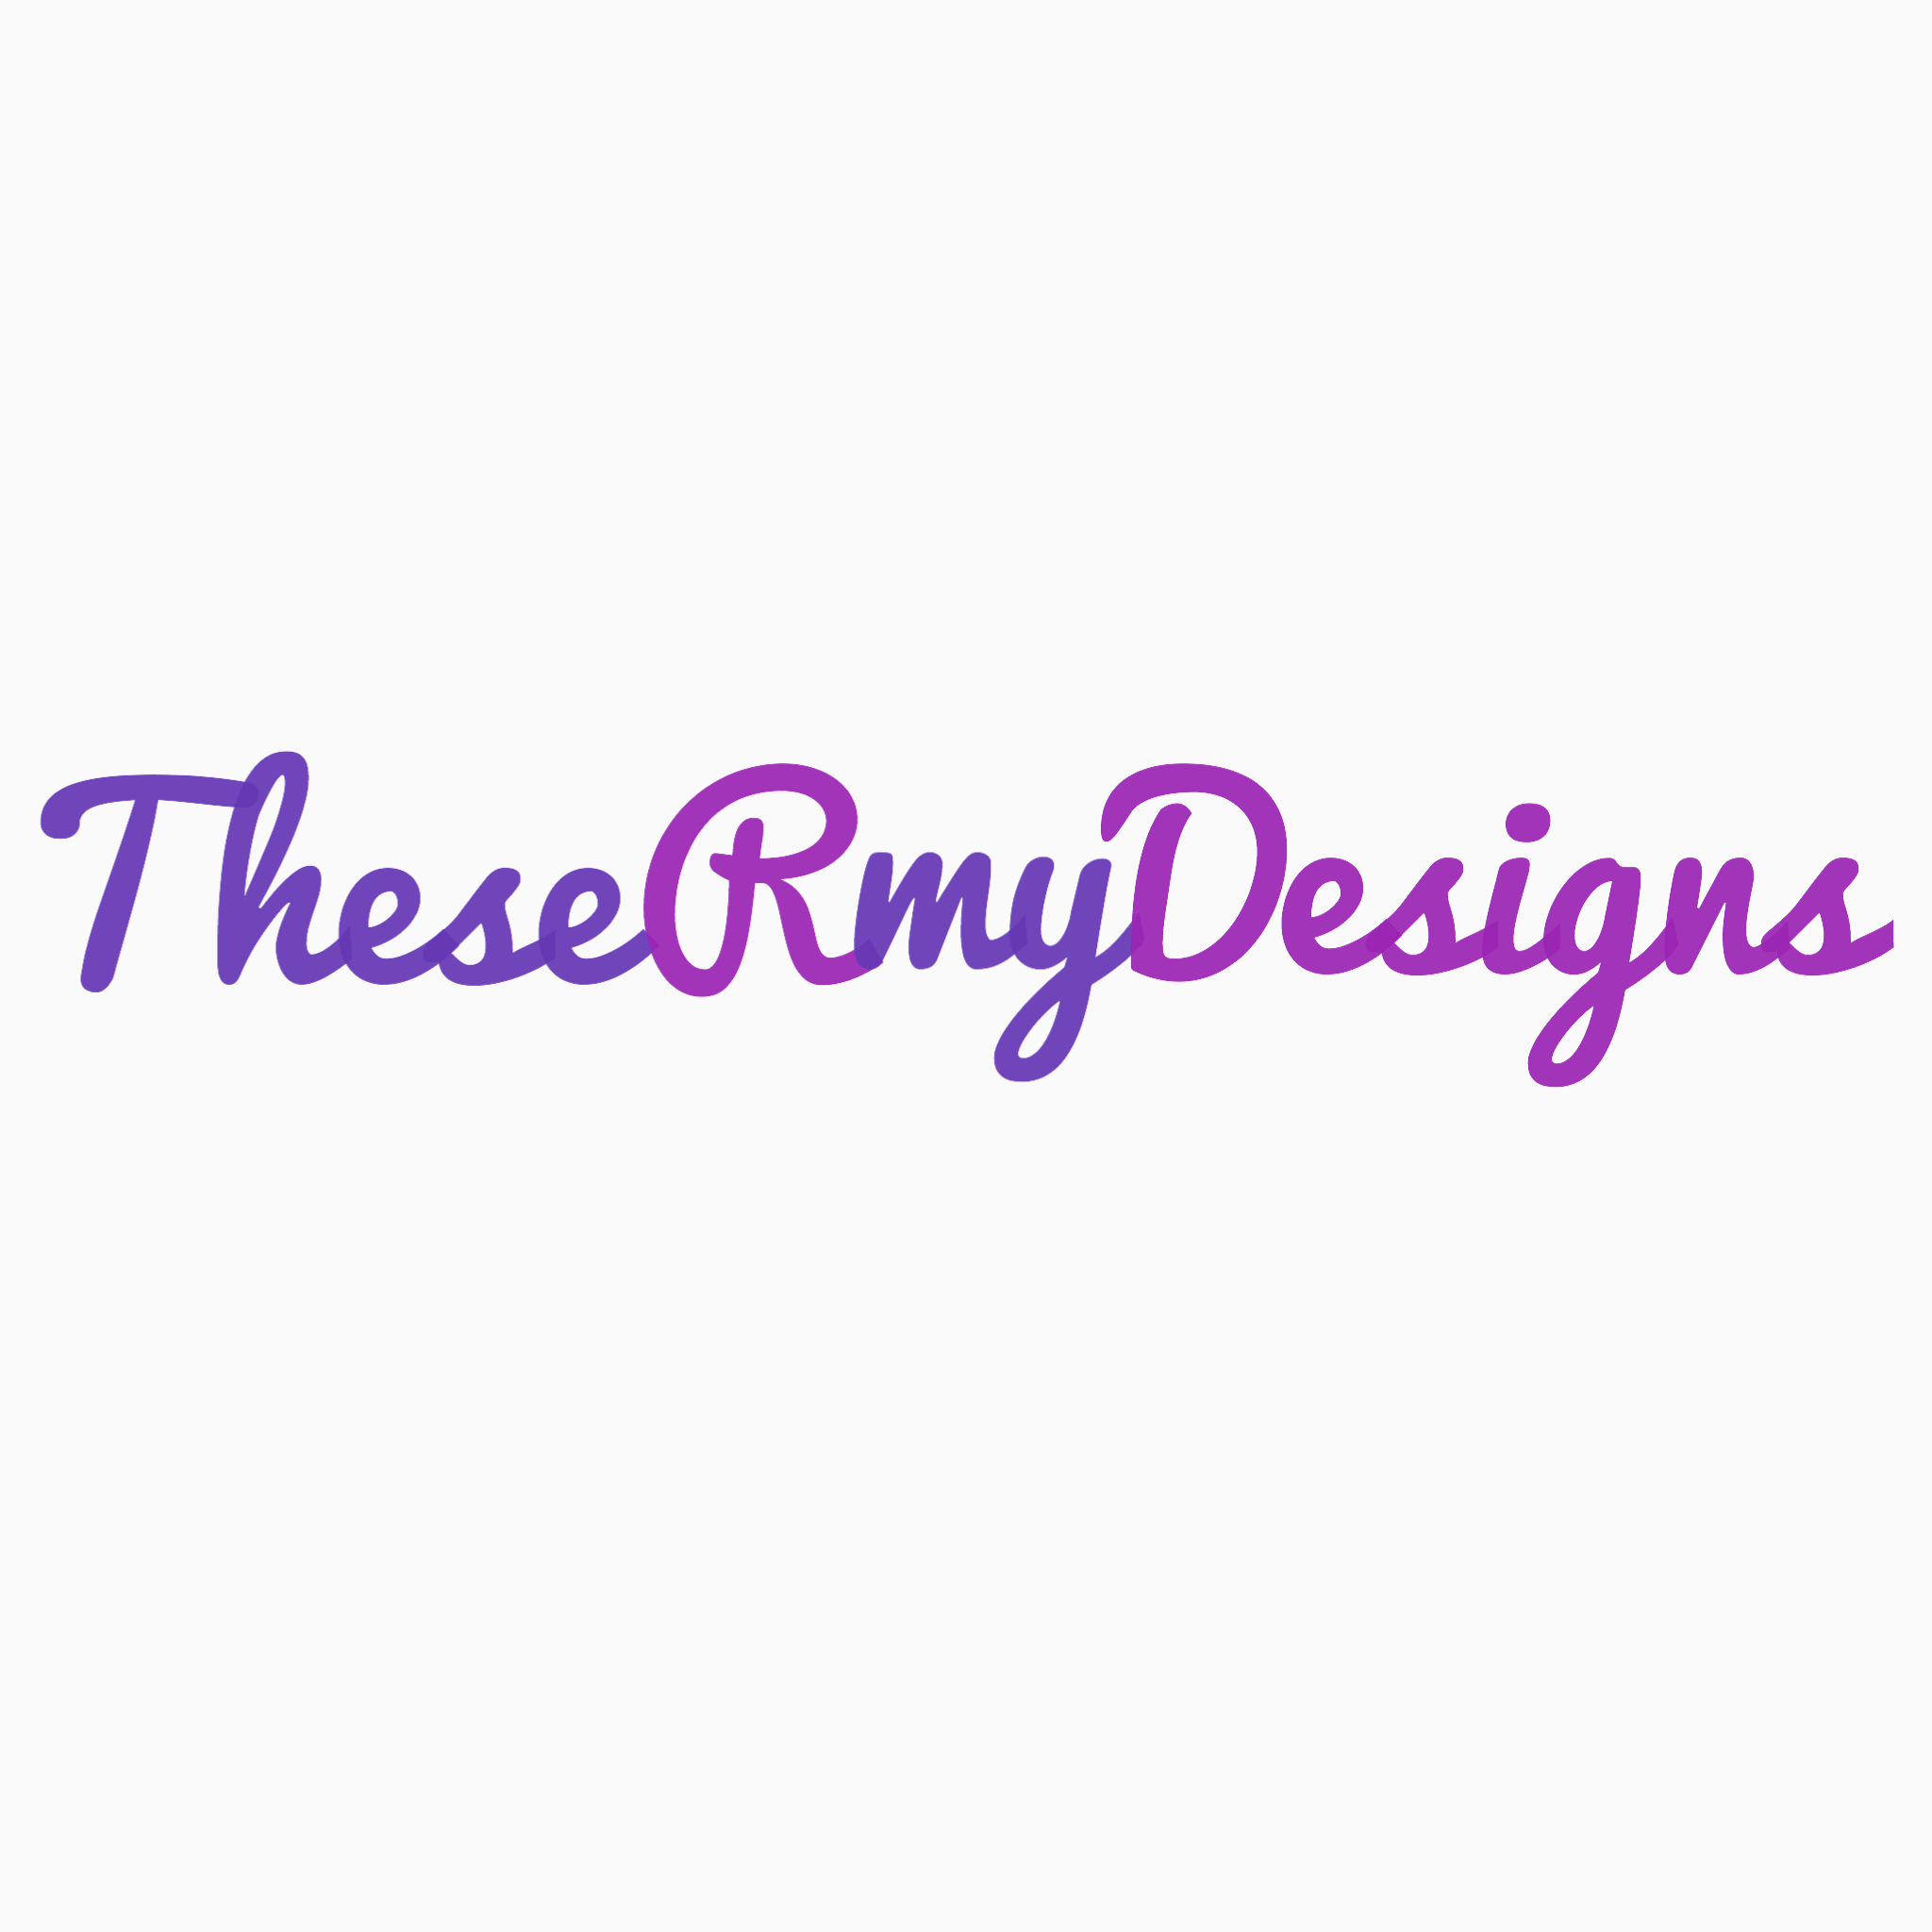 TheseRmydesigns's Signature